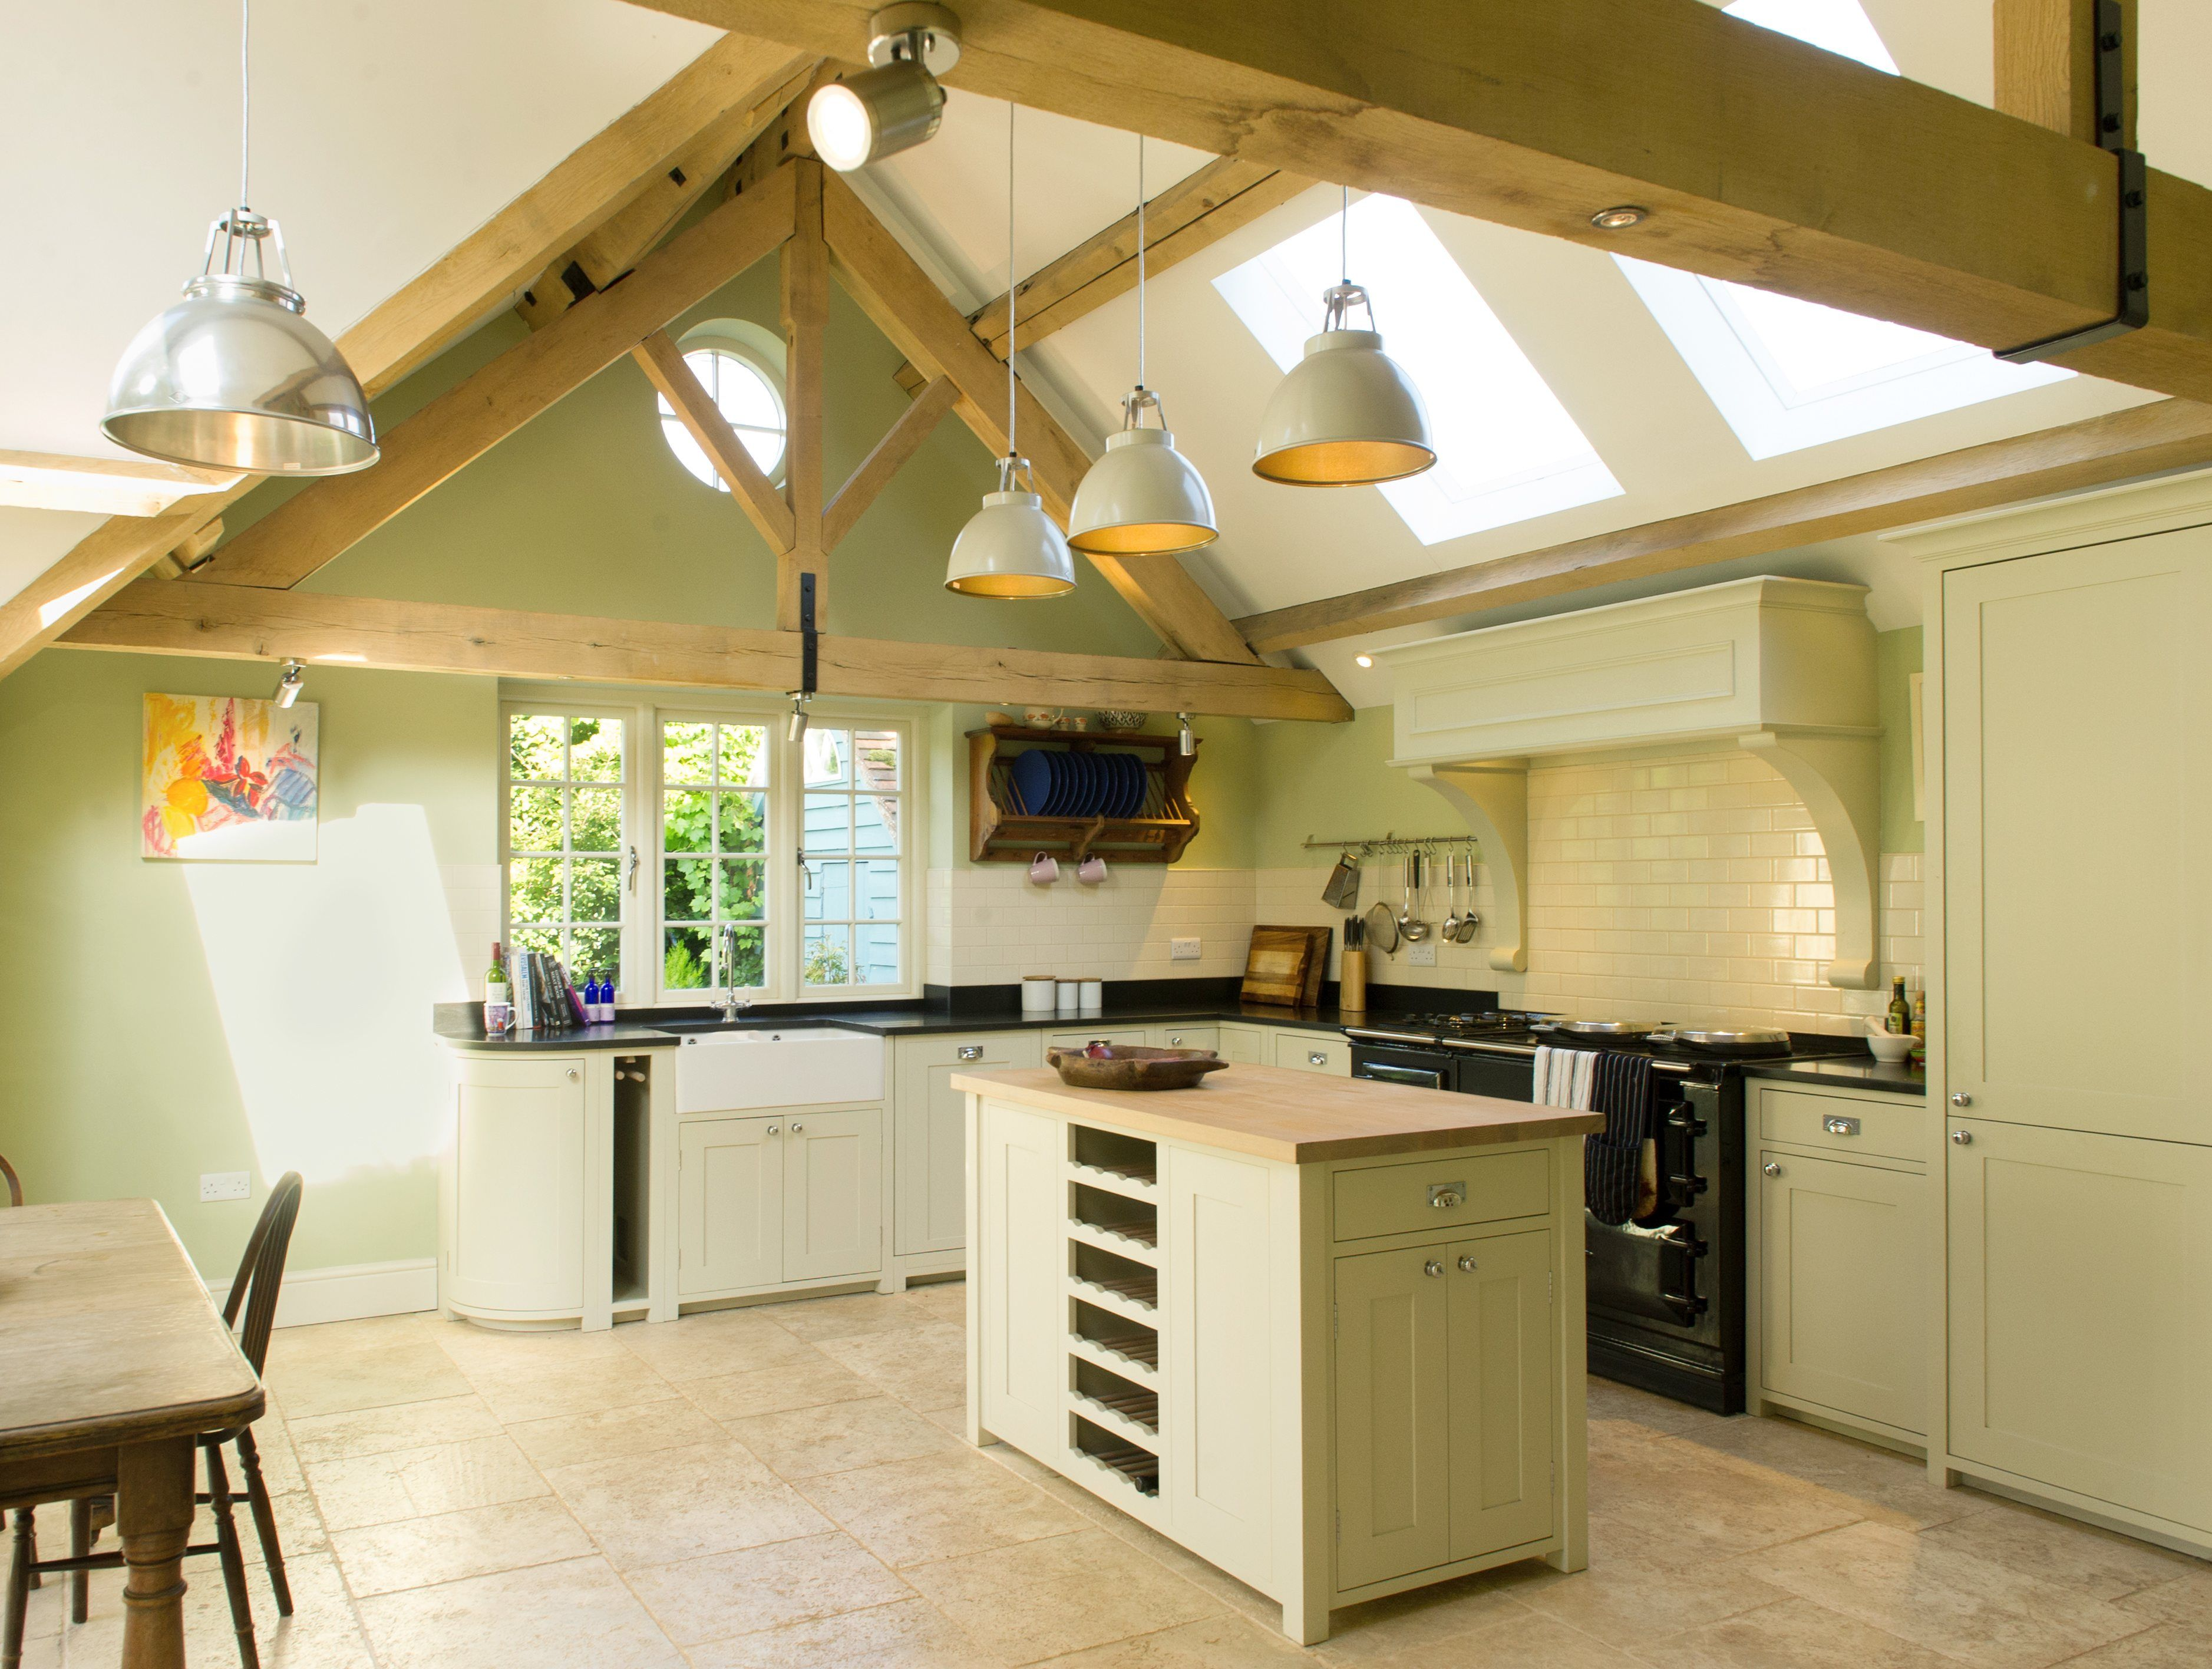 Vaulted ceiling Neptune kitchen with oak trusses and island unit ...